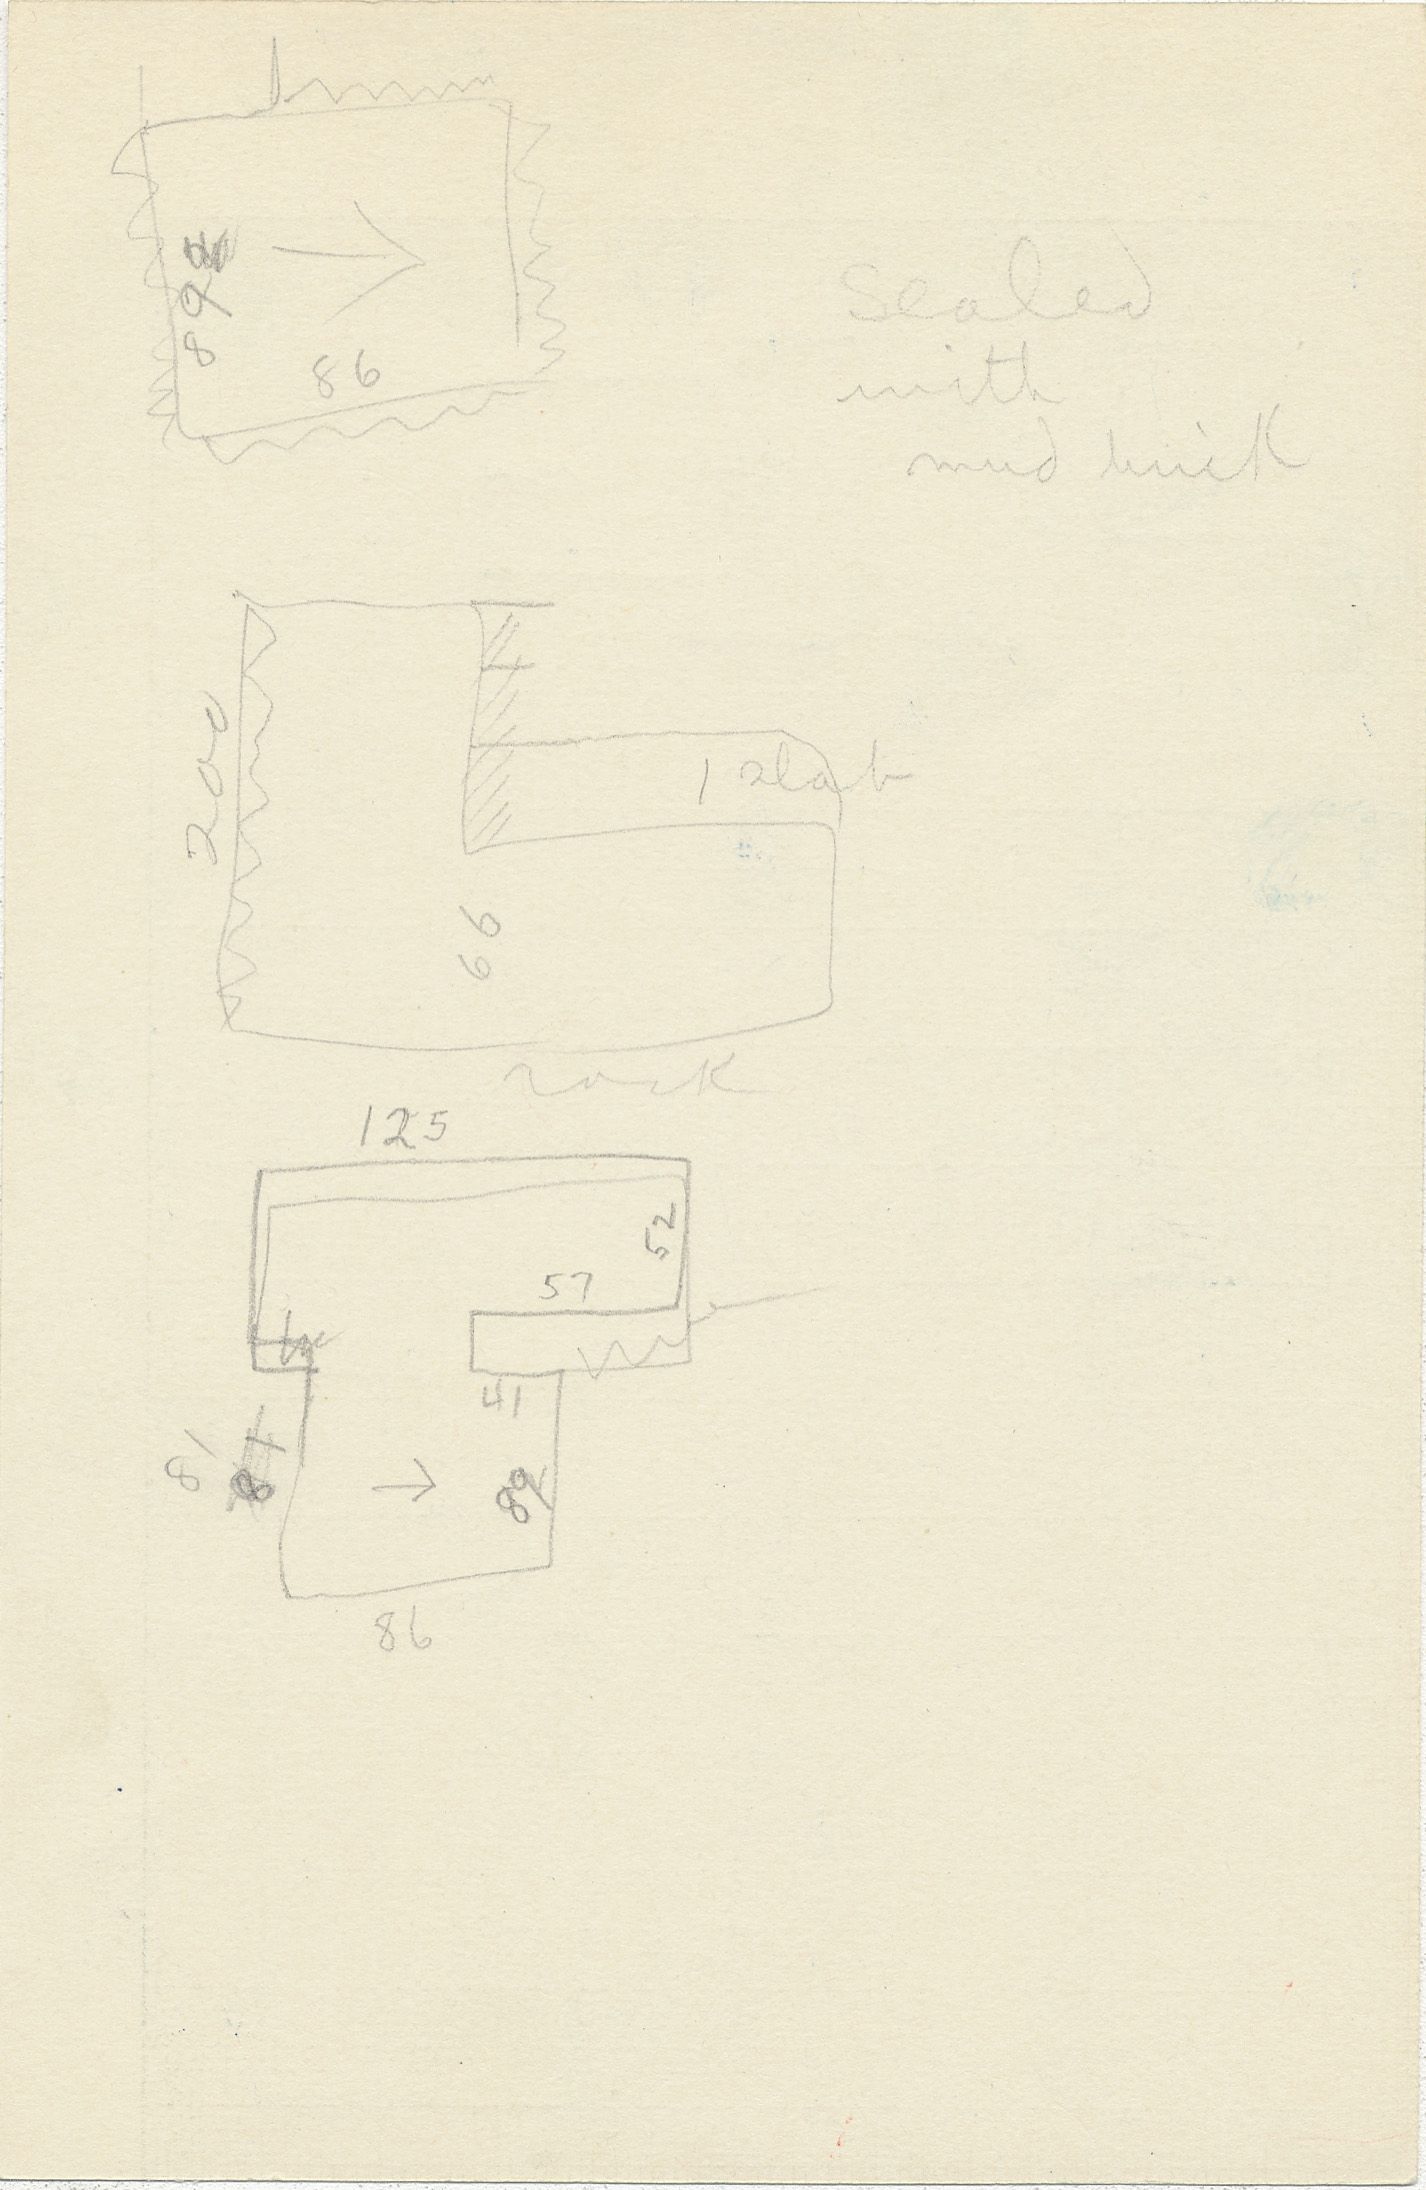 Maps and plans: G 2337, Shaft W, notes